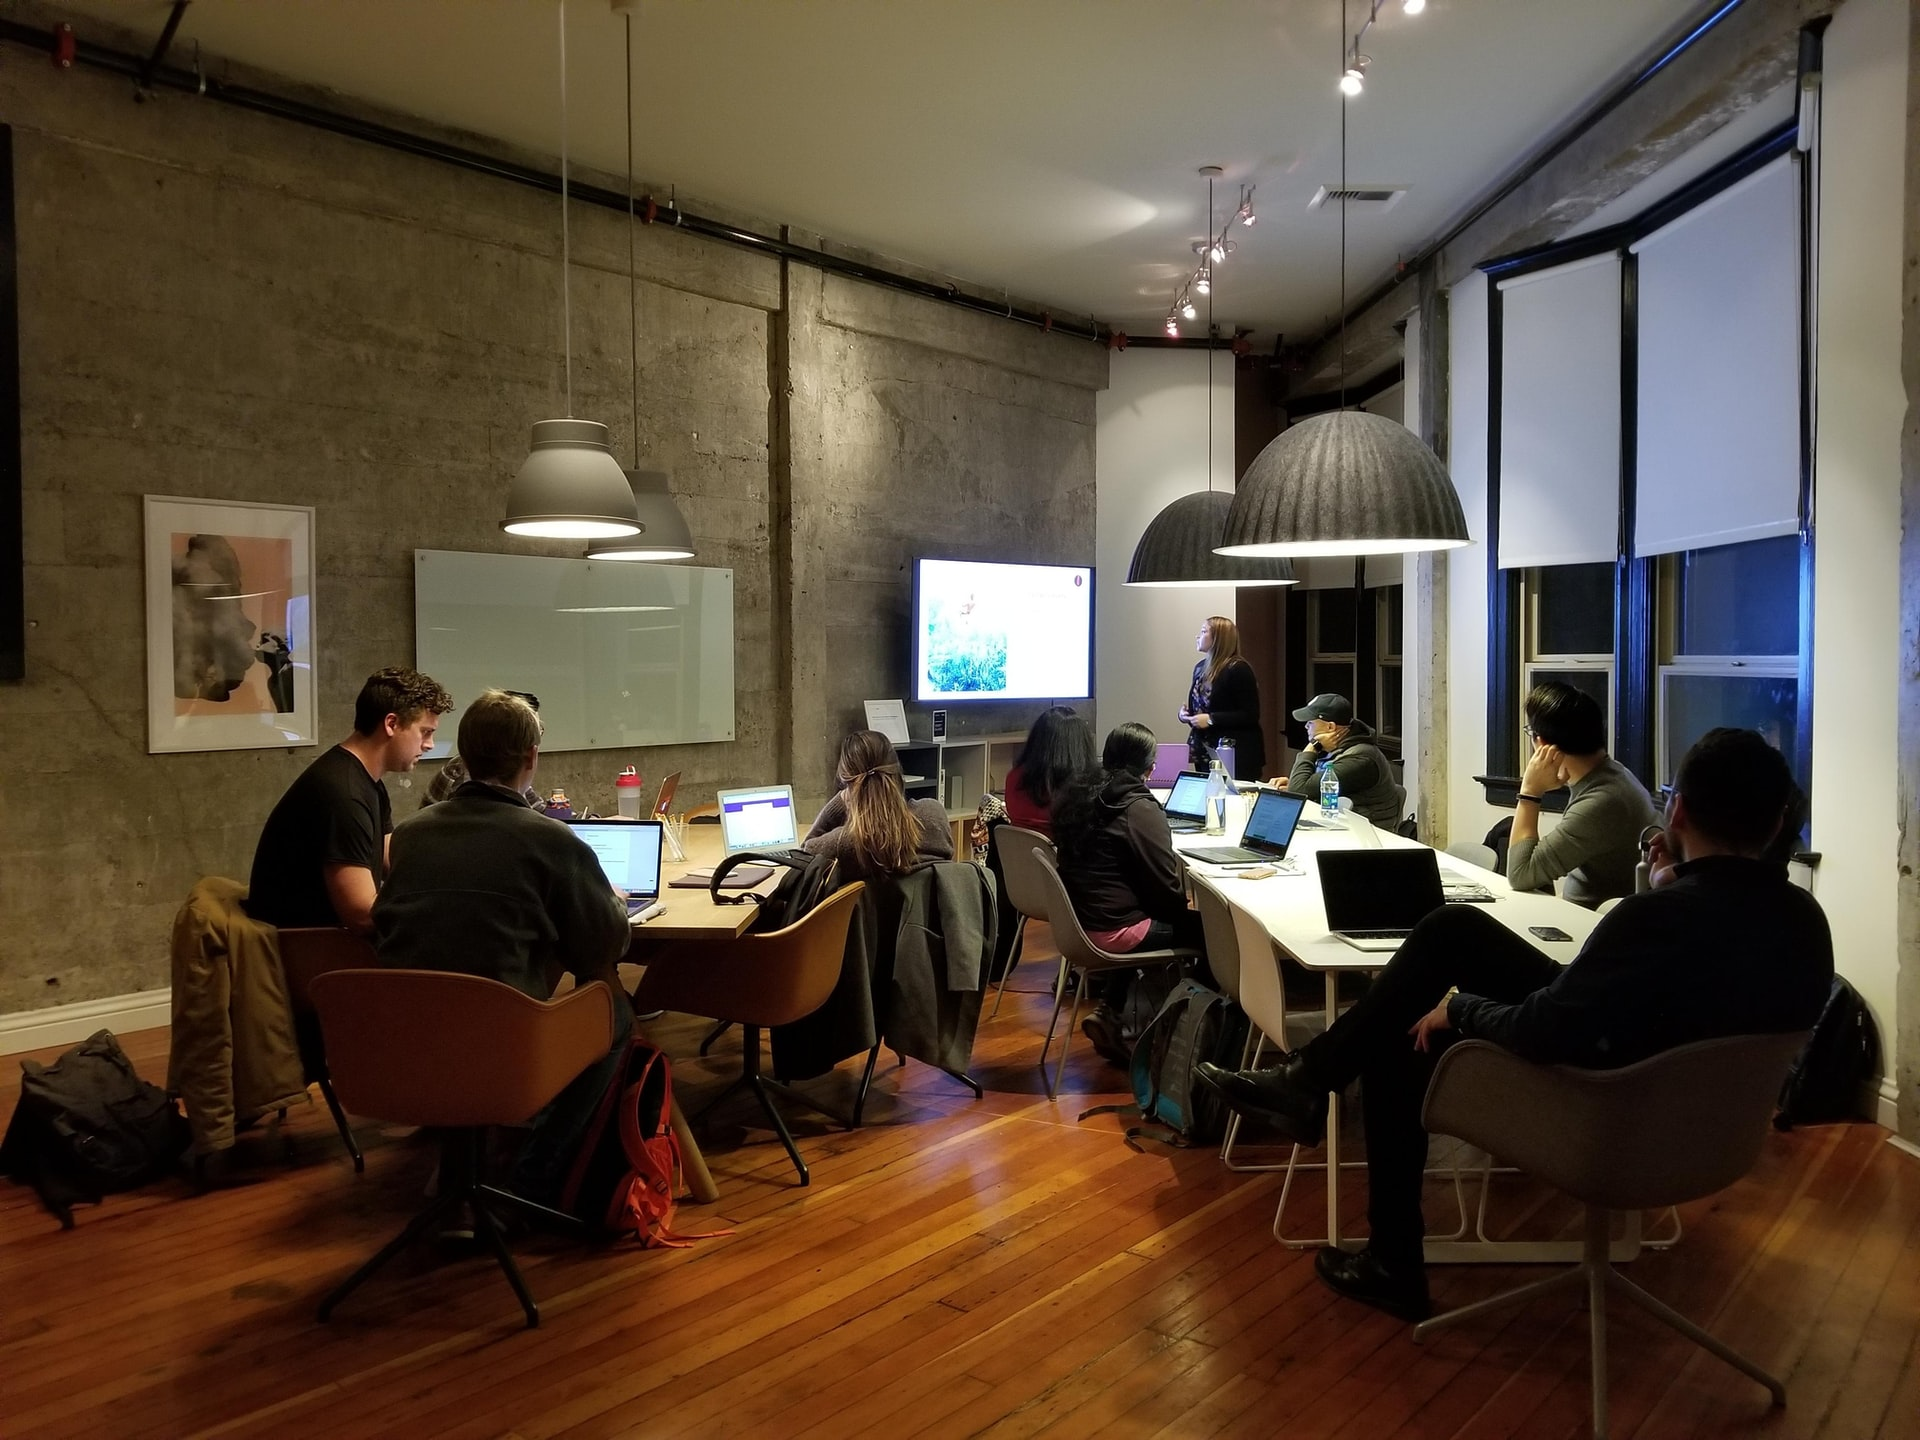 Photo of room with 10 people sitting around two tables working on their laptops